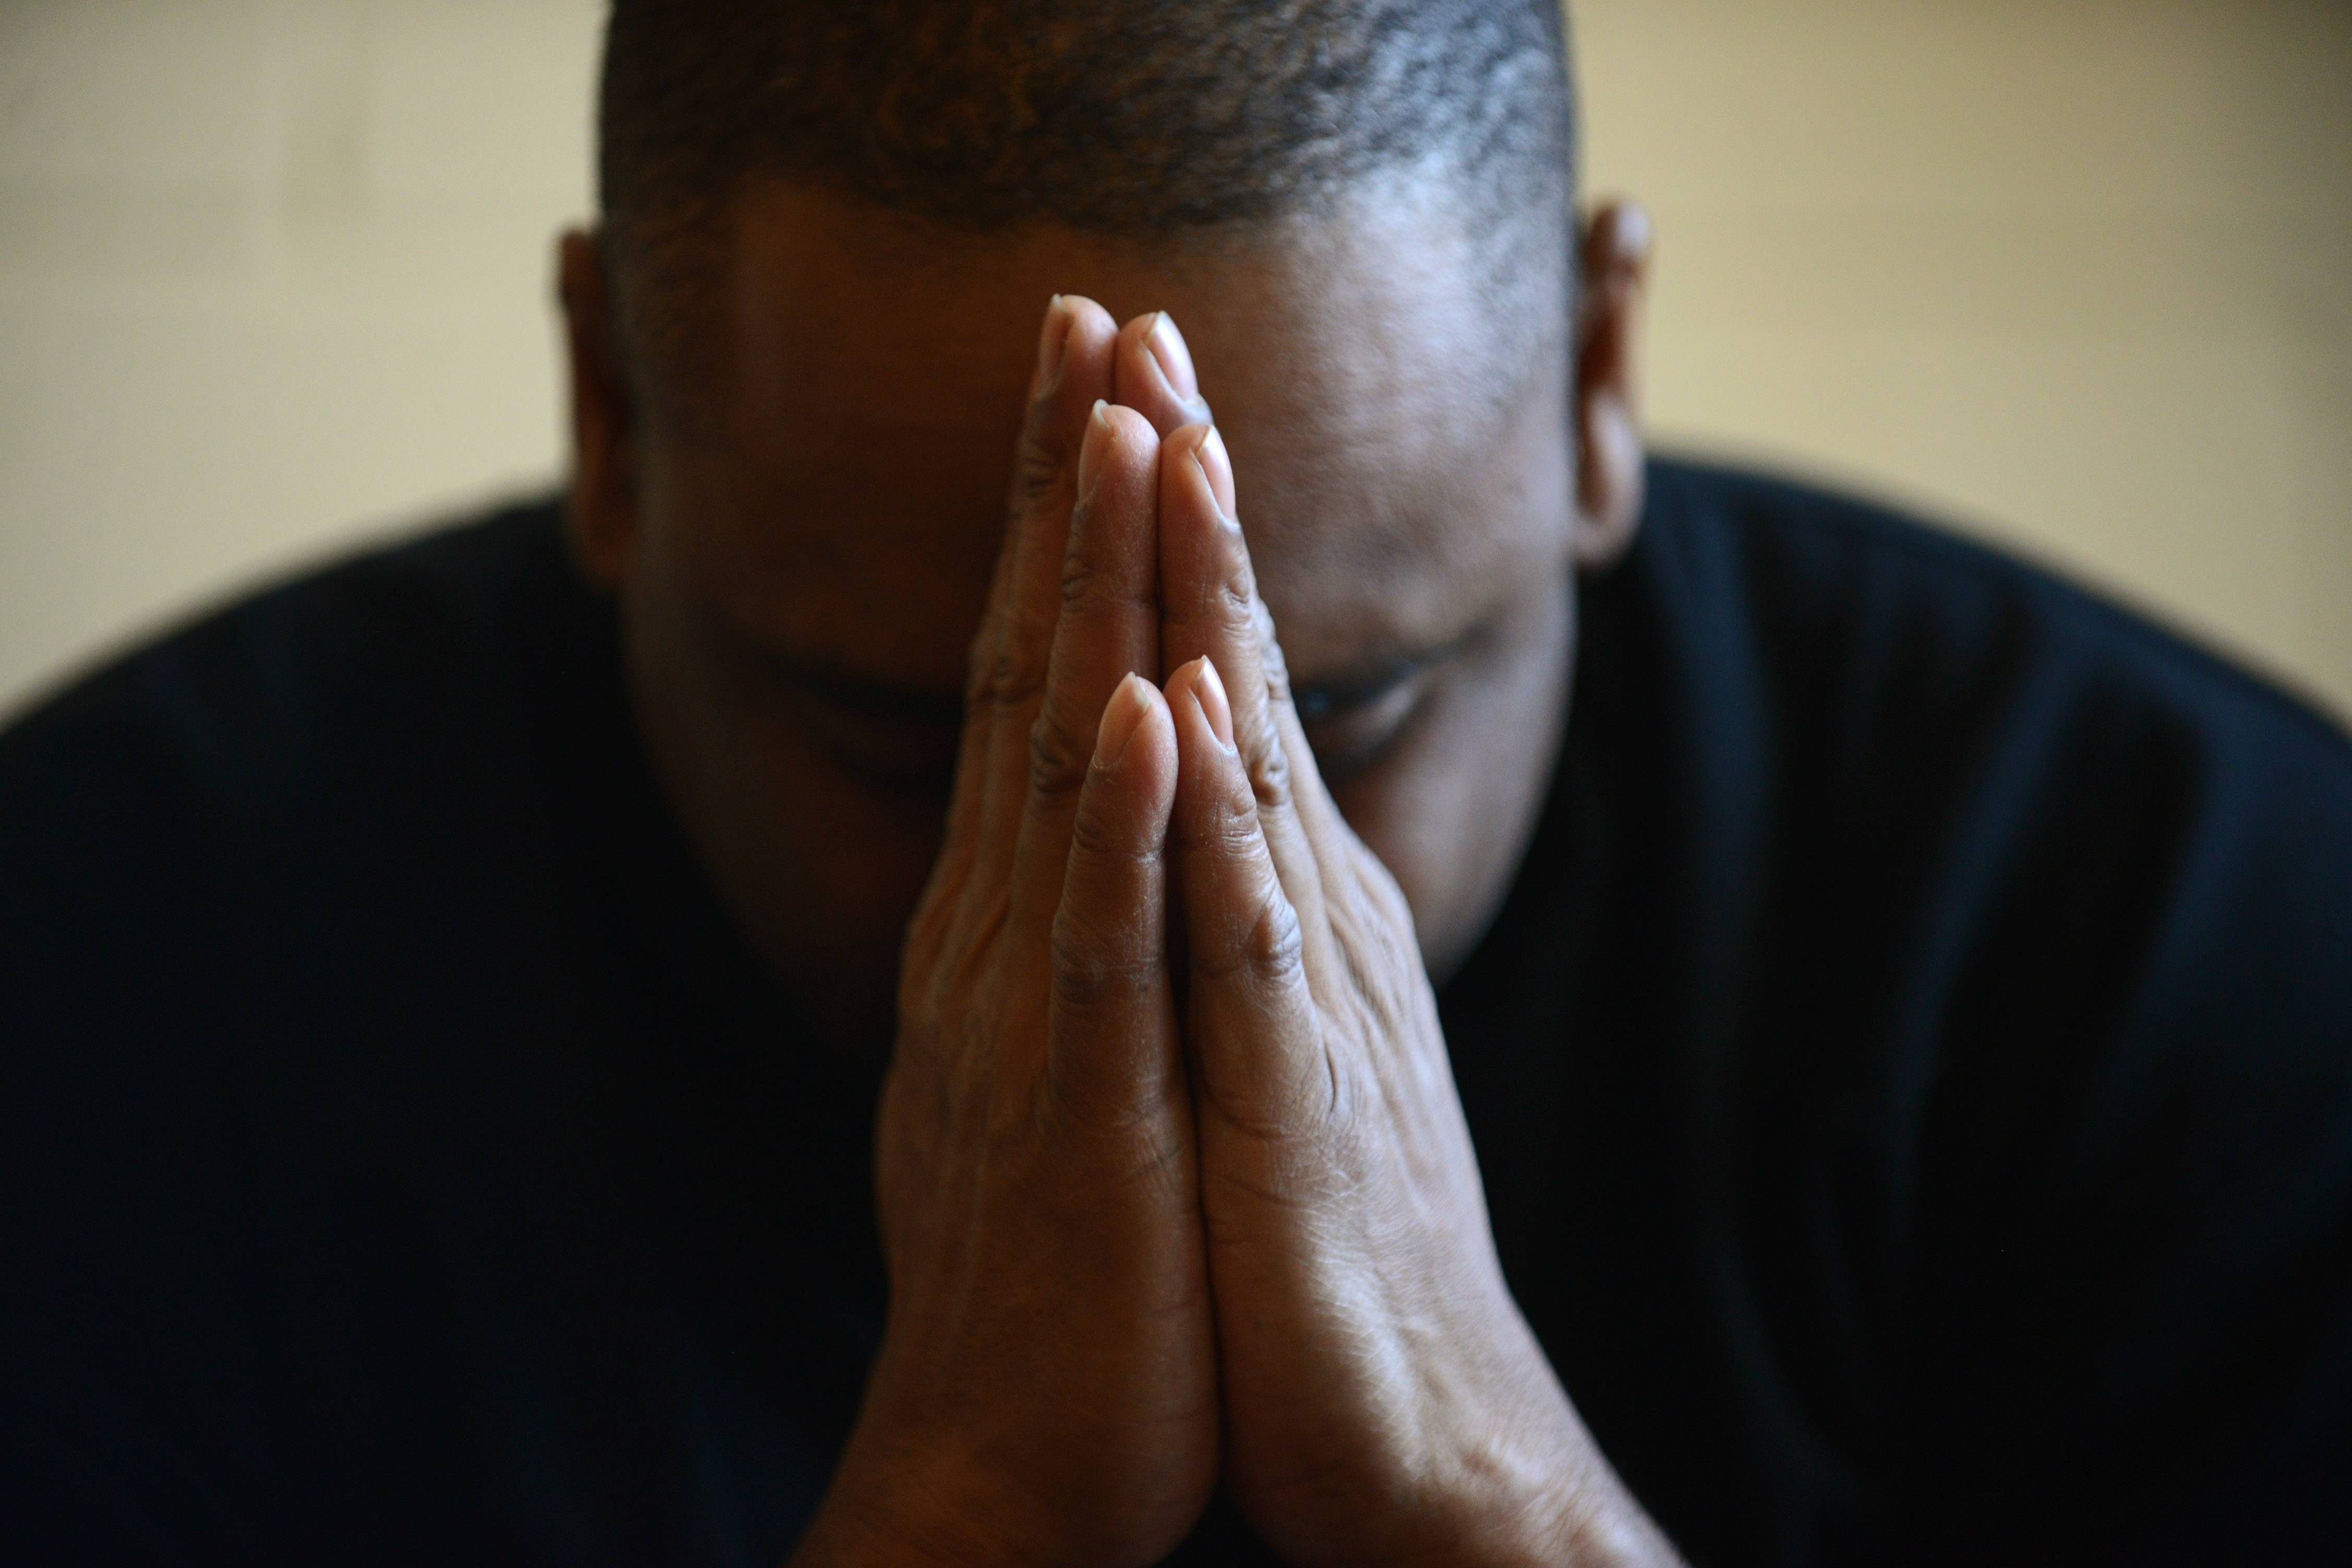 Edward Hayes of Elgin bows his head during a prayer group at Vineyard Church of Elgin. Hayes was homeless and addicted to cocaine before members of the church and their breakfast ministry helped to get him into a rehab program. He's been clean for three years and has volunteered at the church every day since.